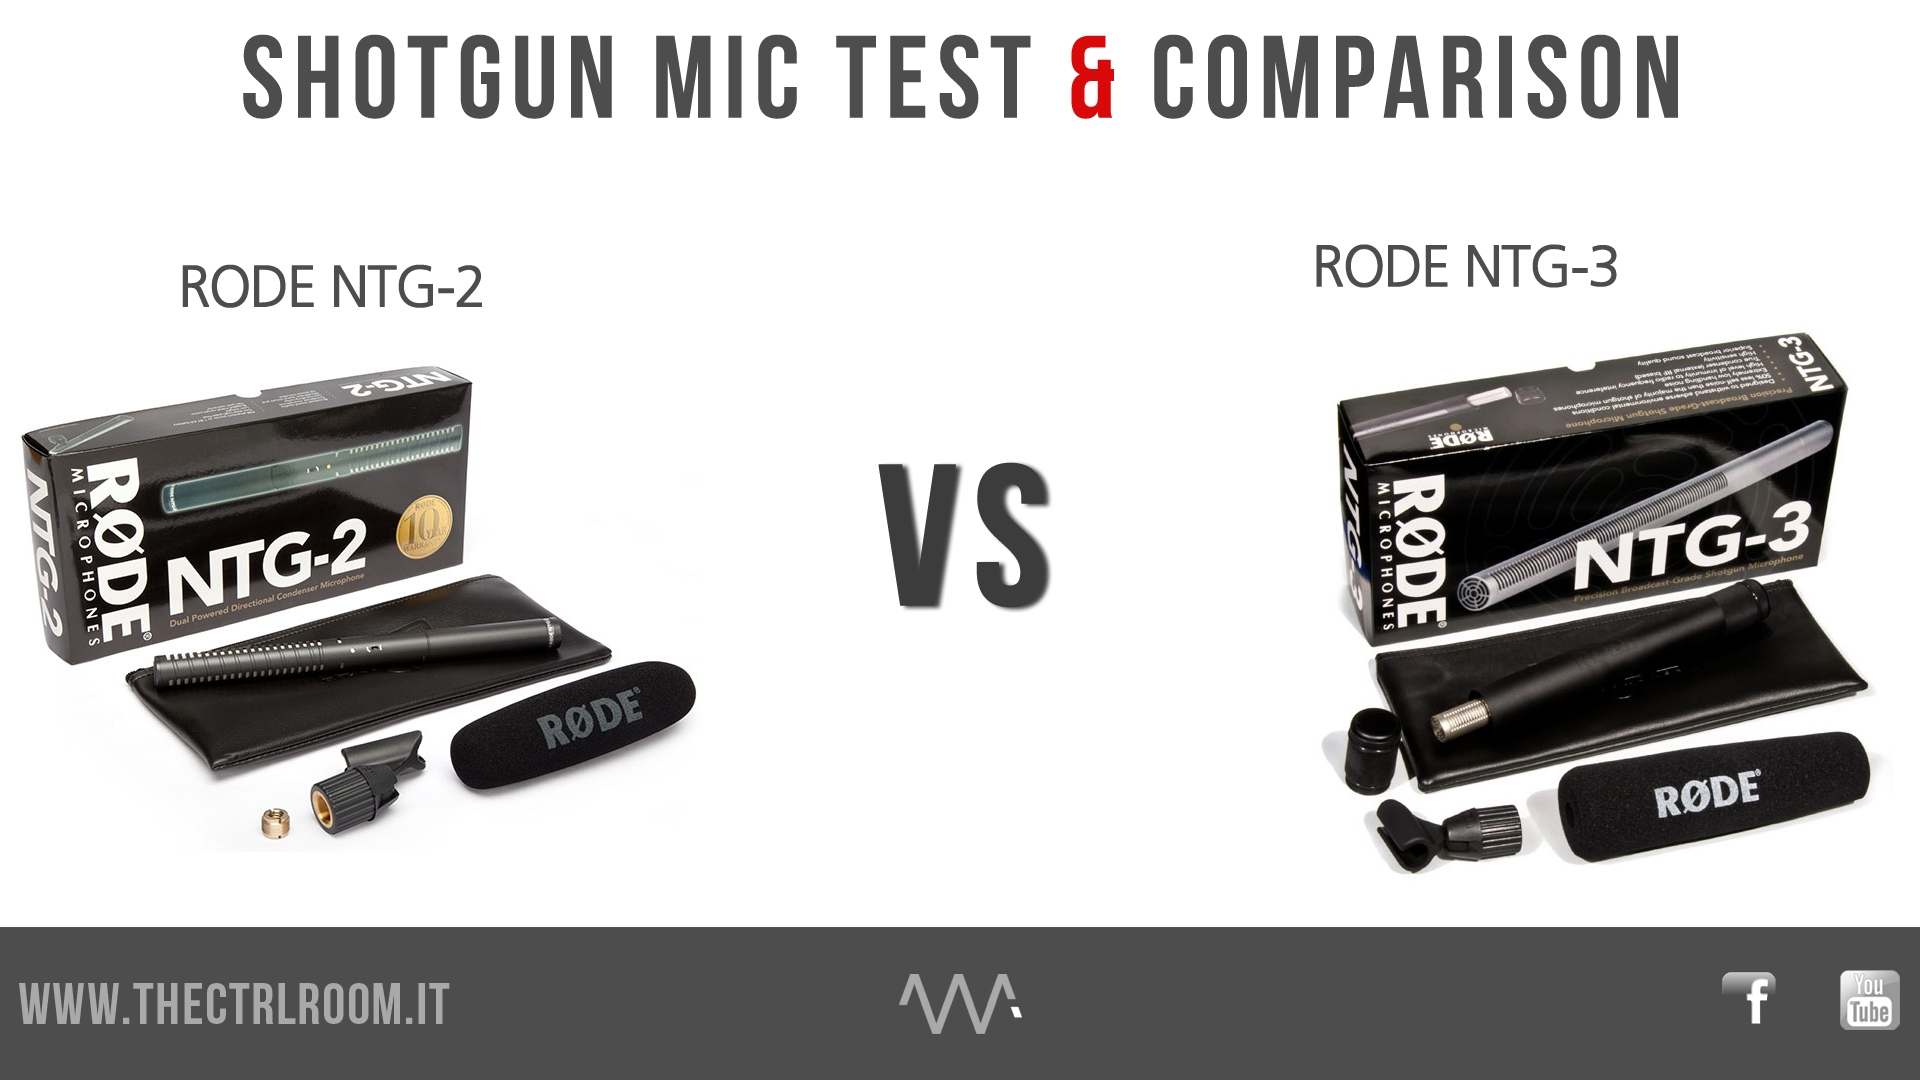 SHOTGUN MIC TEST COMPARISON - Rode NTG-2 vs NTG3